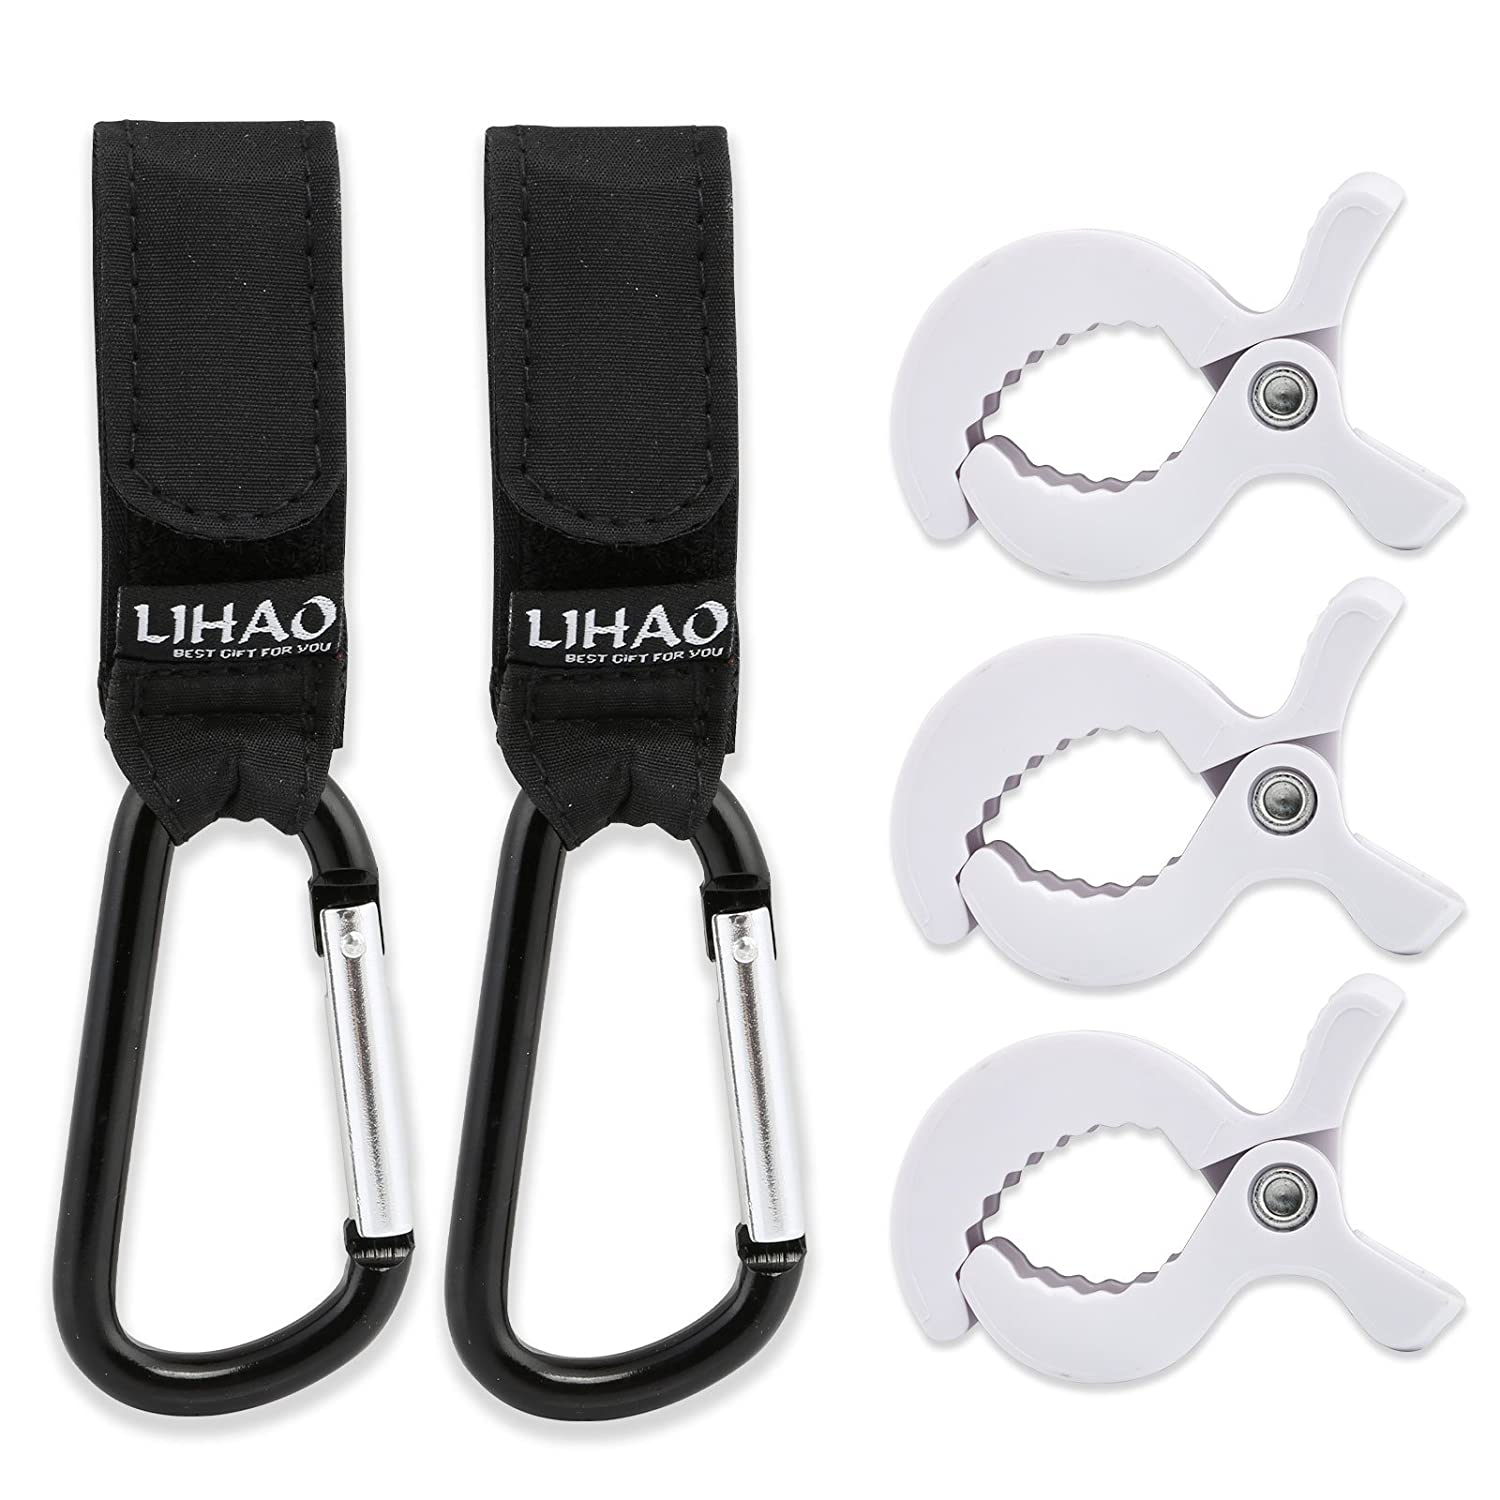 LIHAO 2 Universal Aluminum Buggy Clips for Hanging with 3 Stroller Pegs to Hook Toys